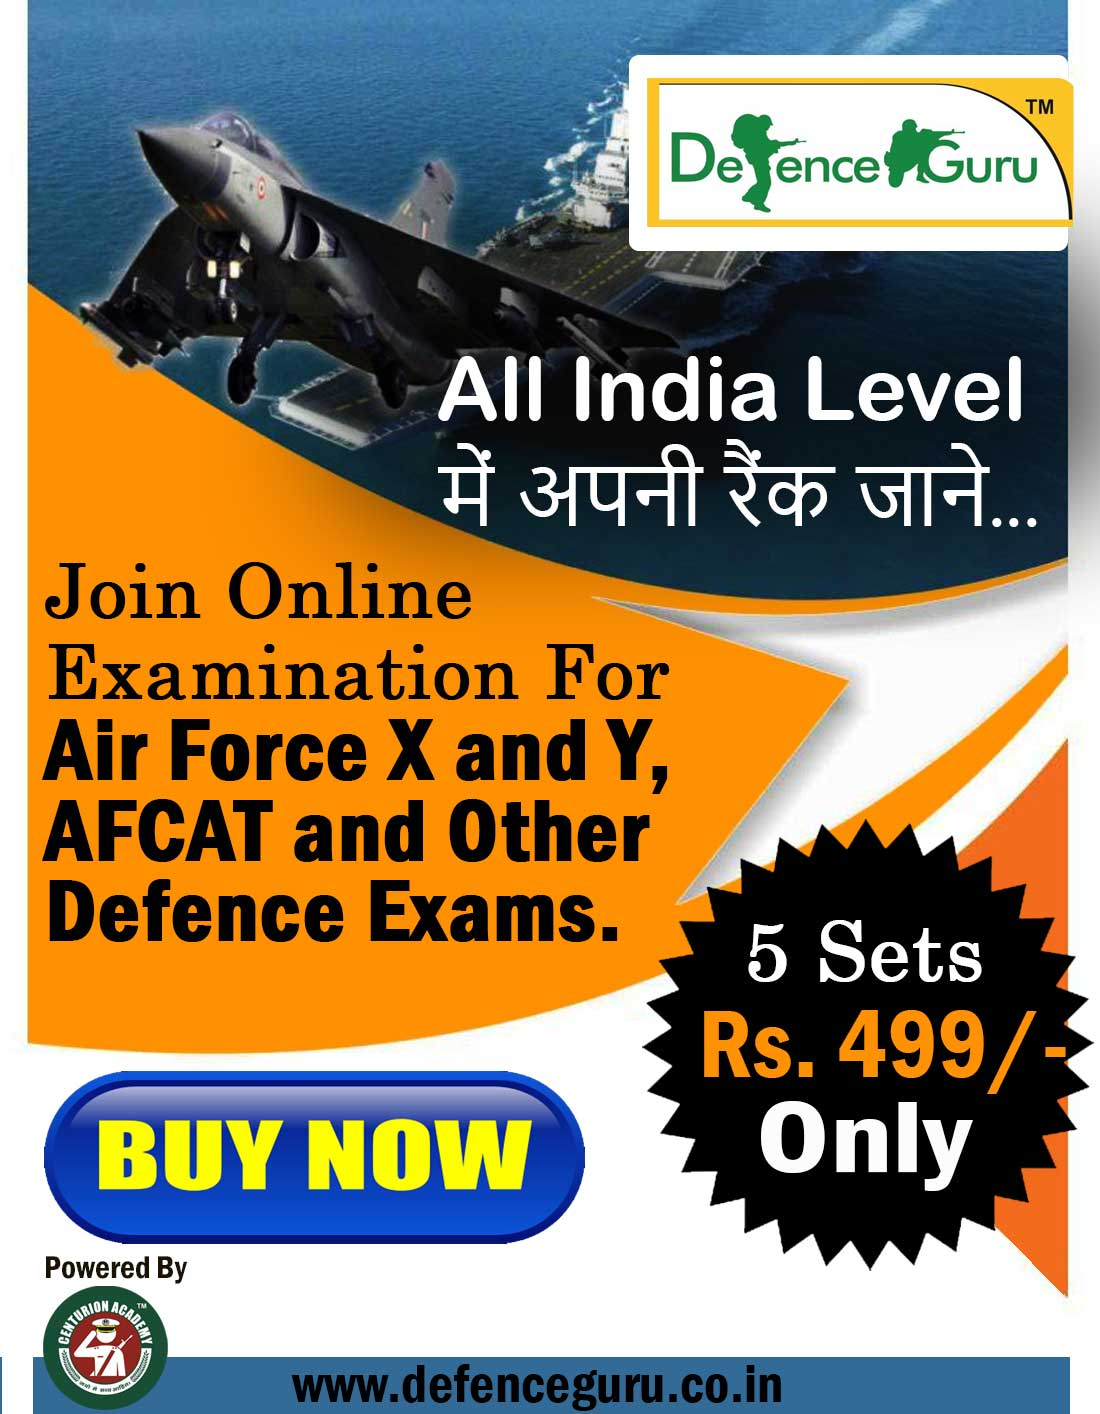 Online Examination for Air Force X and Y Exam